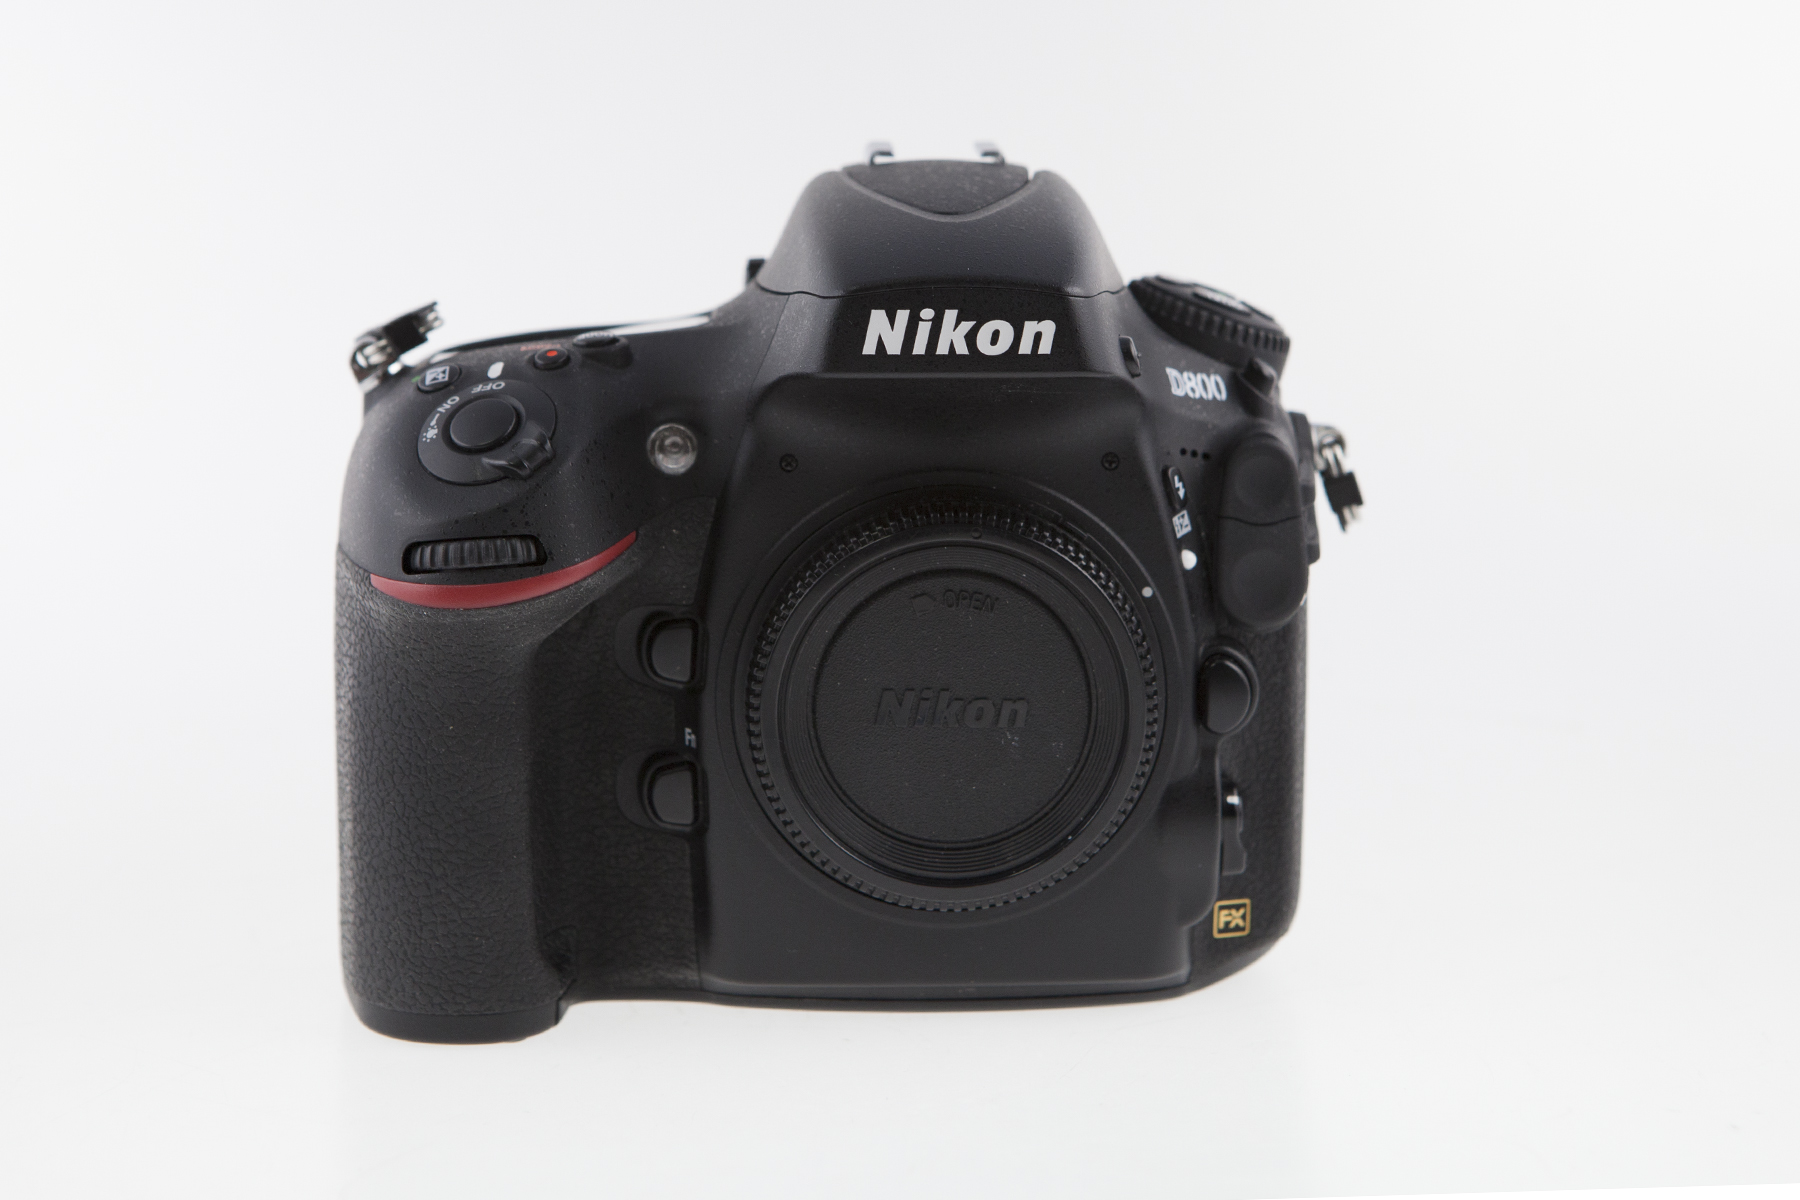 Camera Pre Owned Dslr Camera used camera gear englewood on pre owned equipment and all items are carefully inspected when we bring them in check out these great cameras lenses from nikon